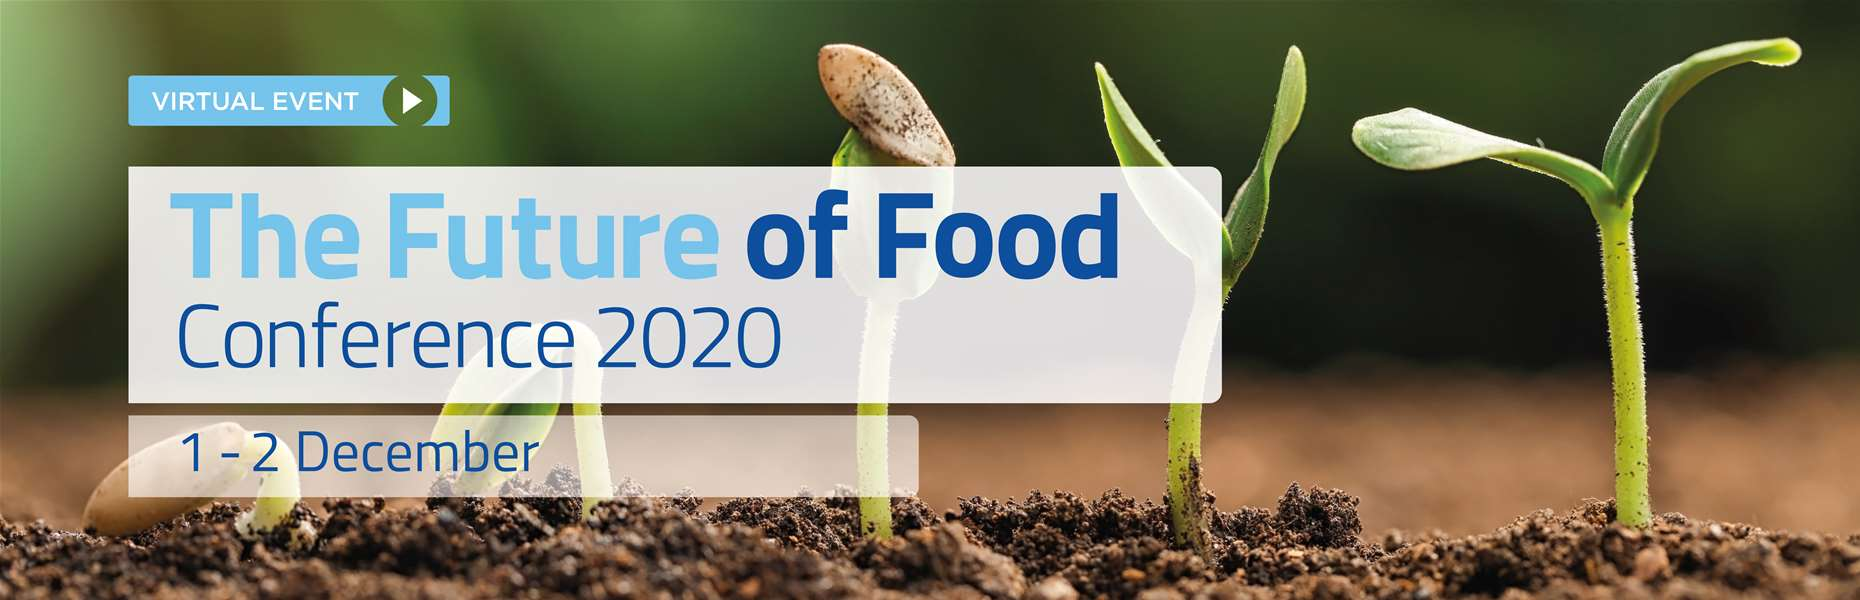 EIT Future of Food Conference 2020